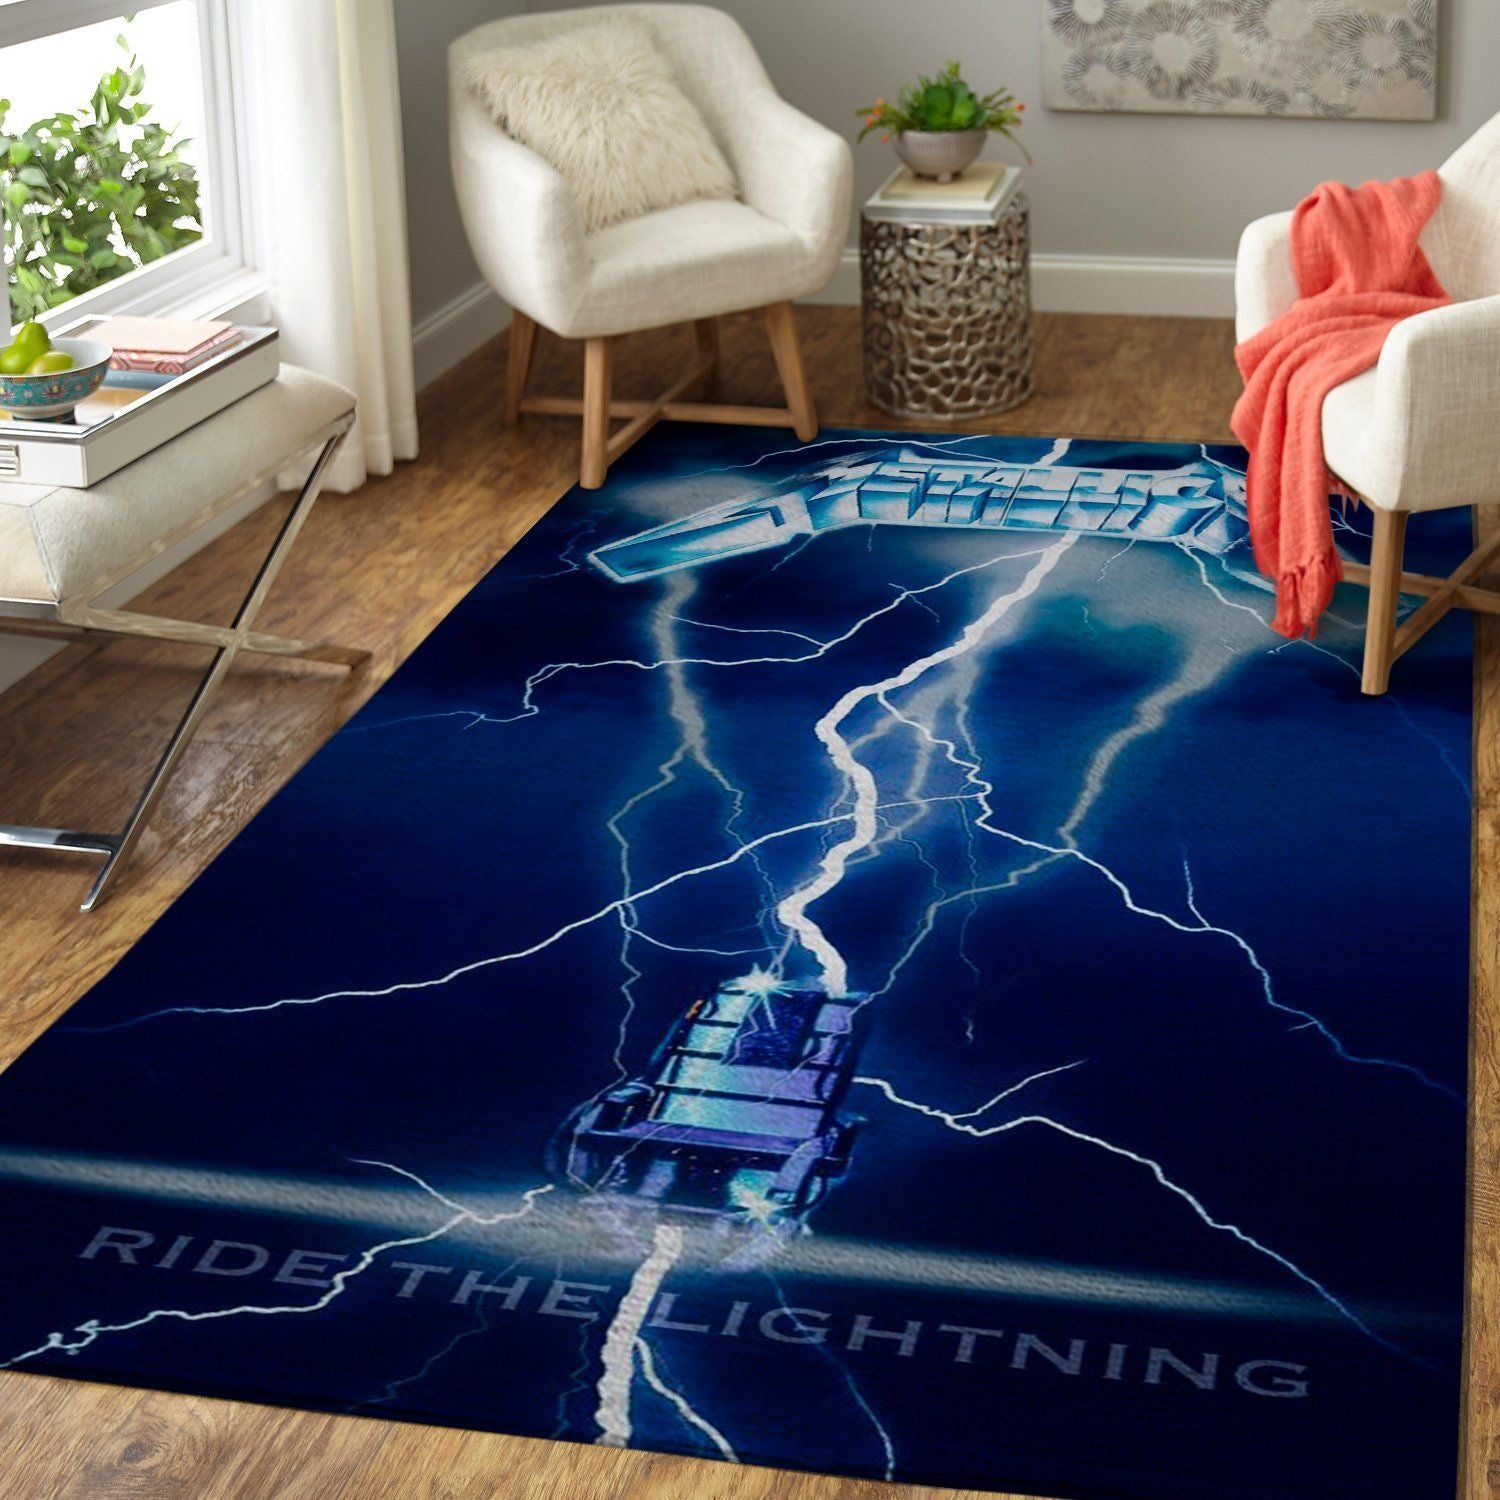 Metallica Area Rug / Music OFD 1910122